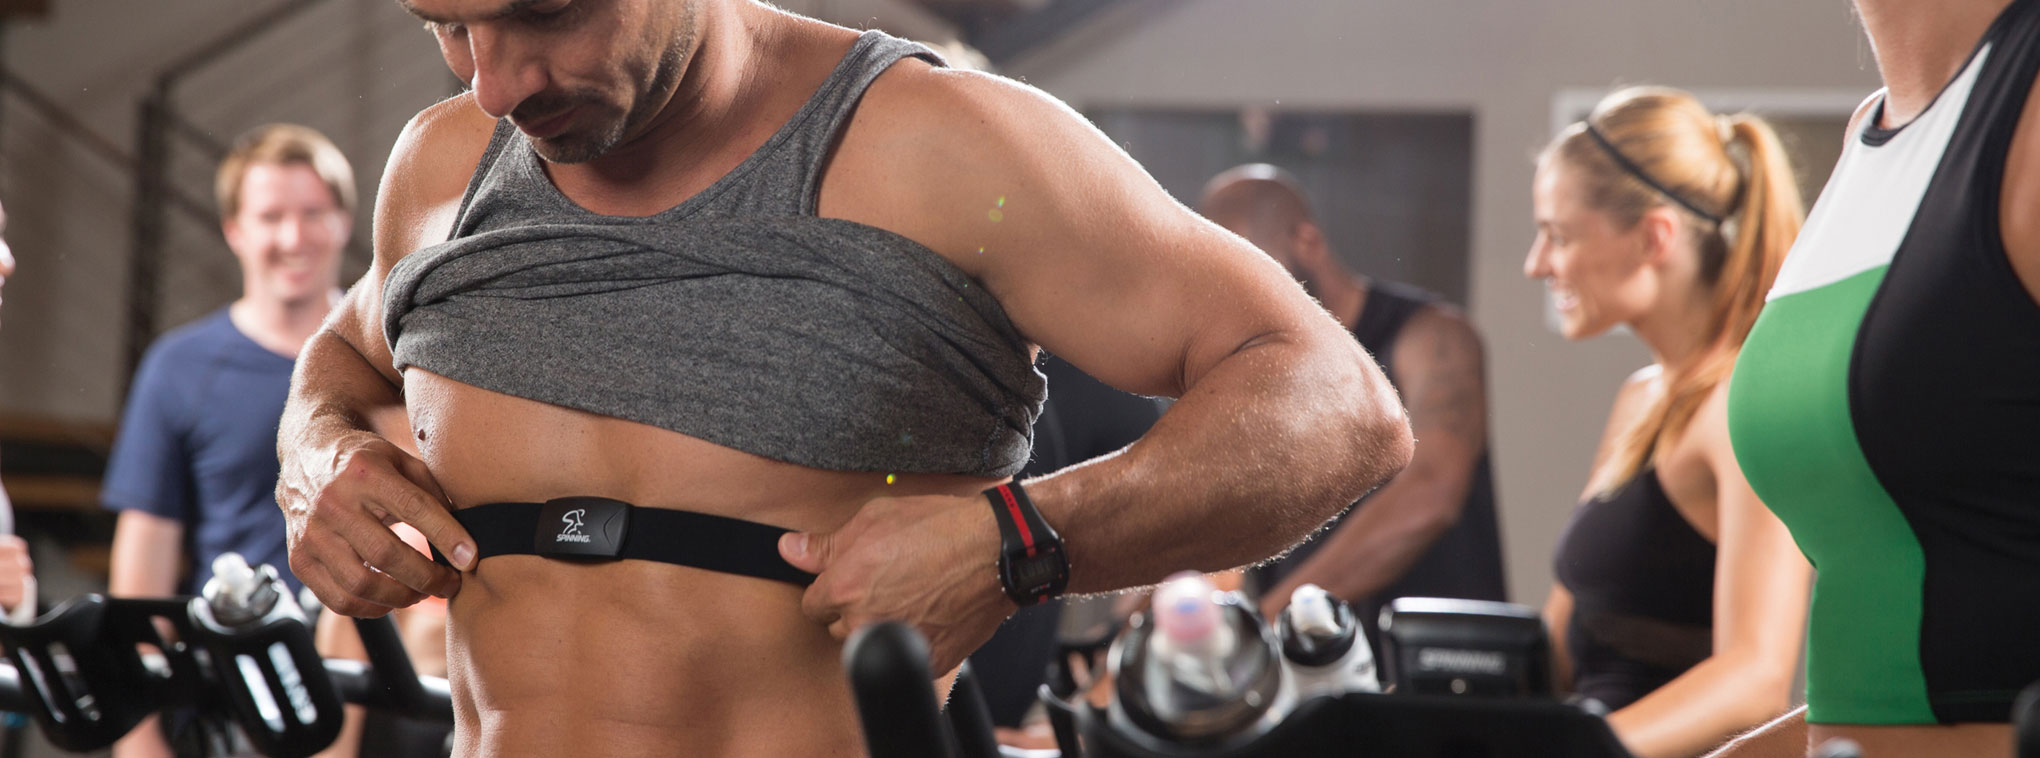 Exercise Heart Rate Monitors | Chest Strap | Spinning®